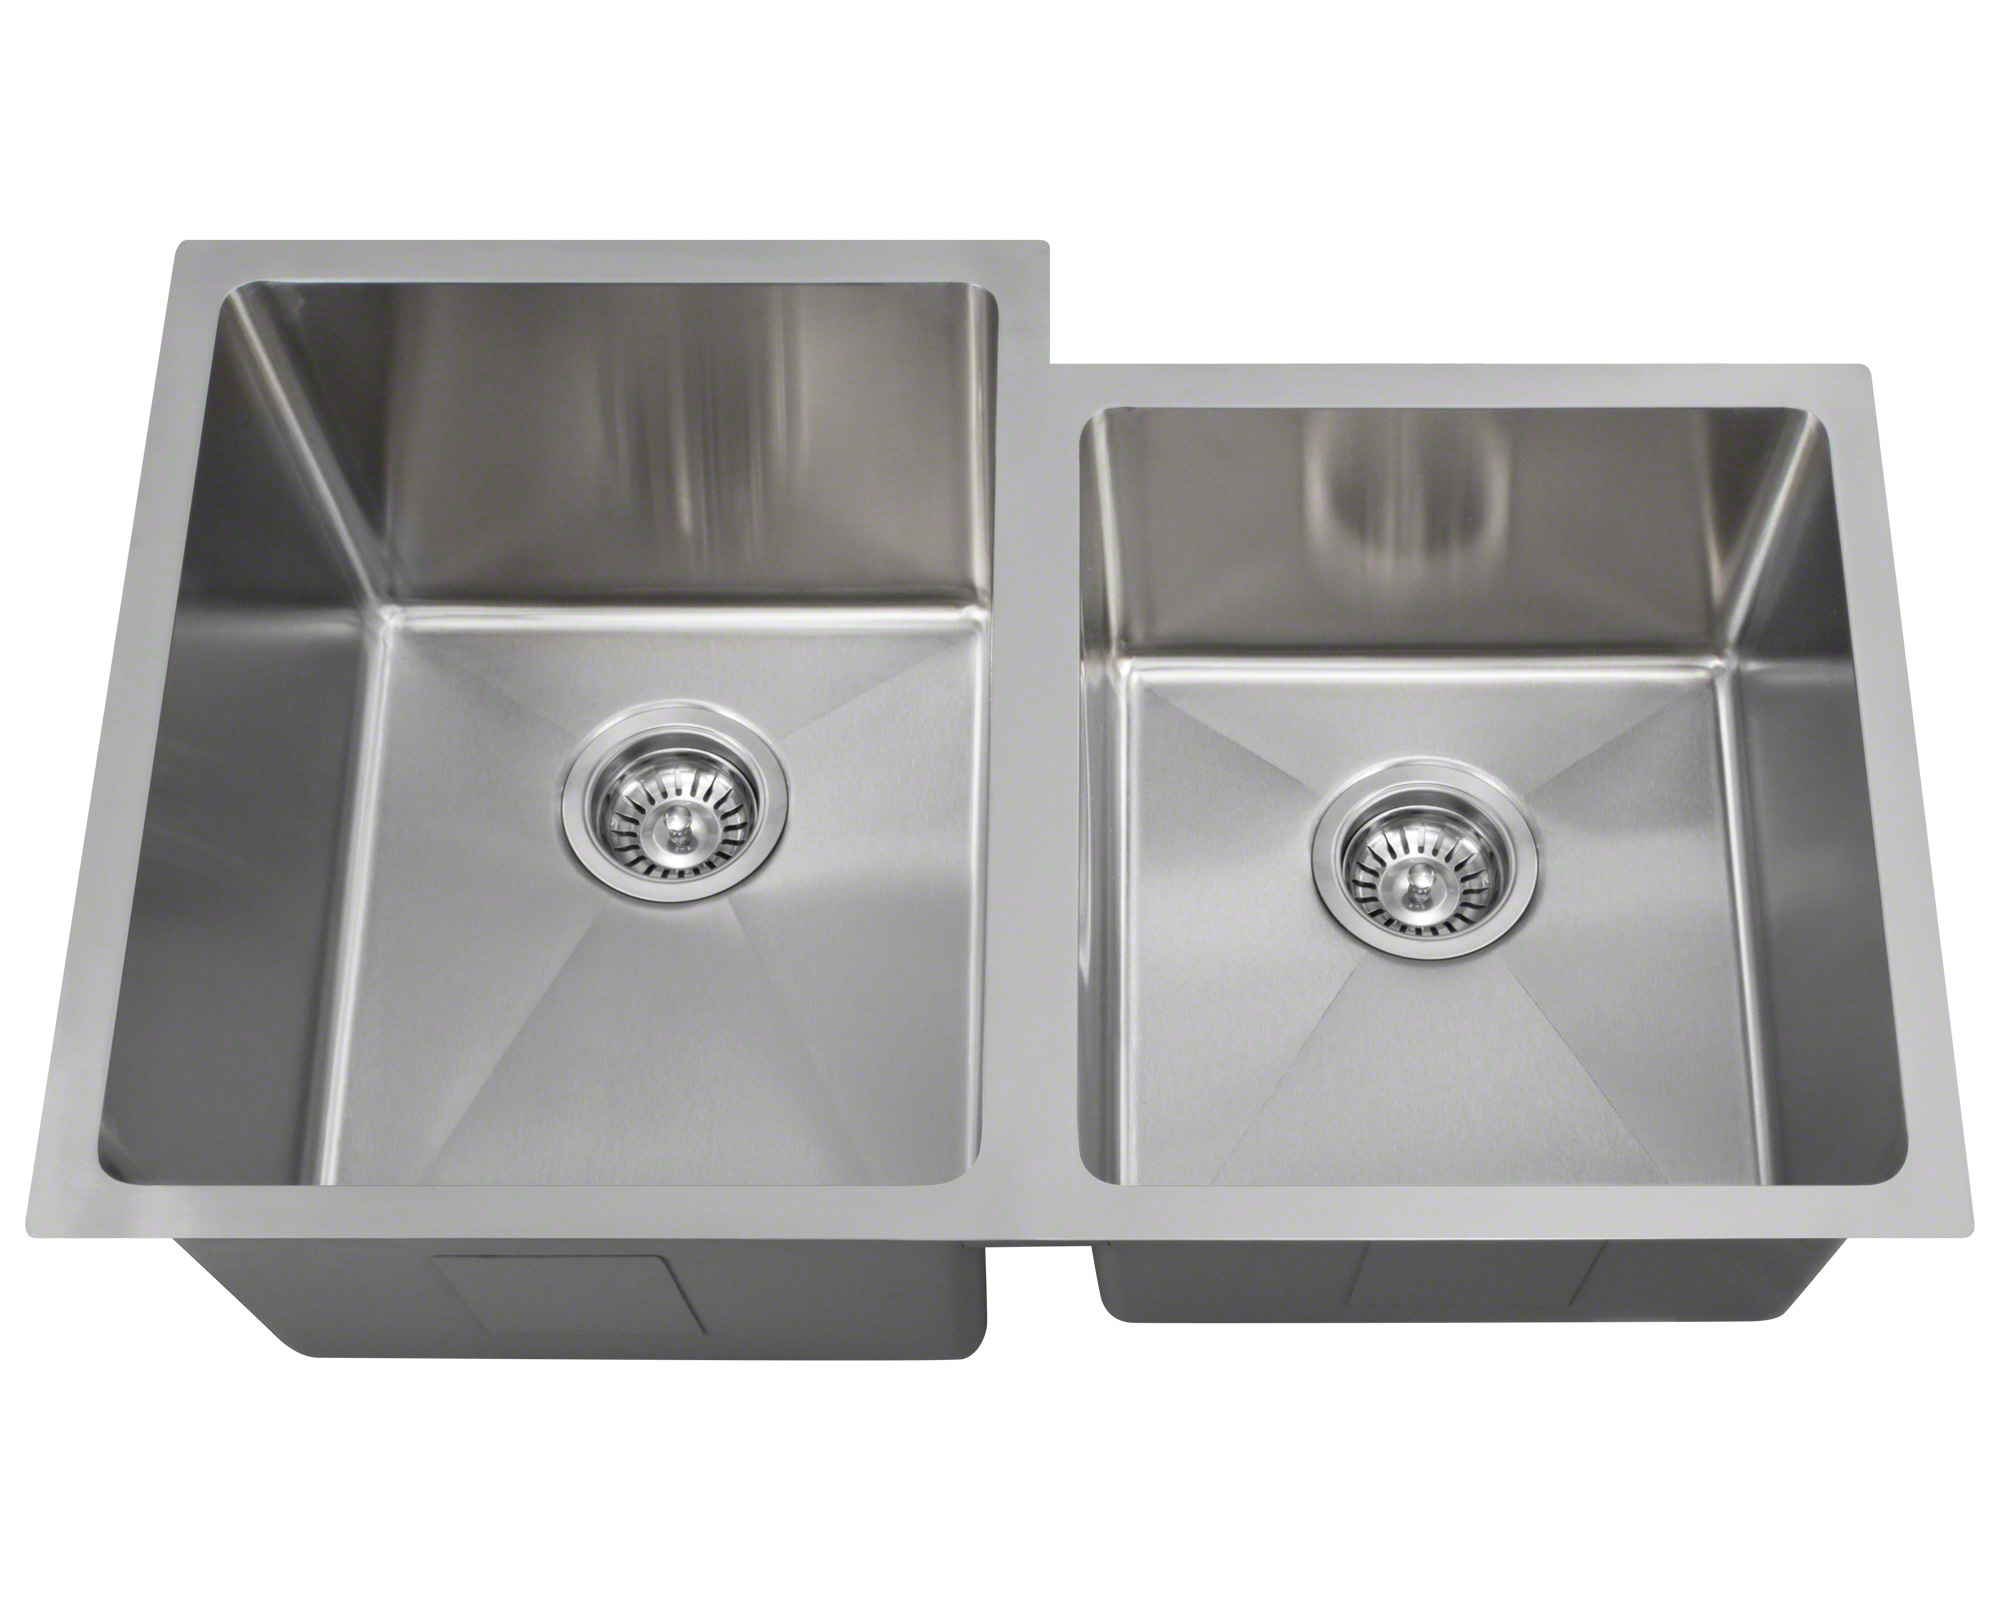 "Polaris PL0213 Undermount Offset Double Bowl 3/4"" Radius Stainless Steel Kitchen Sink"